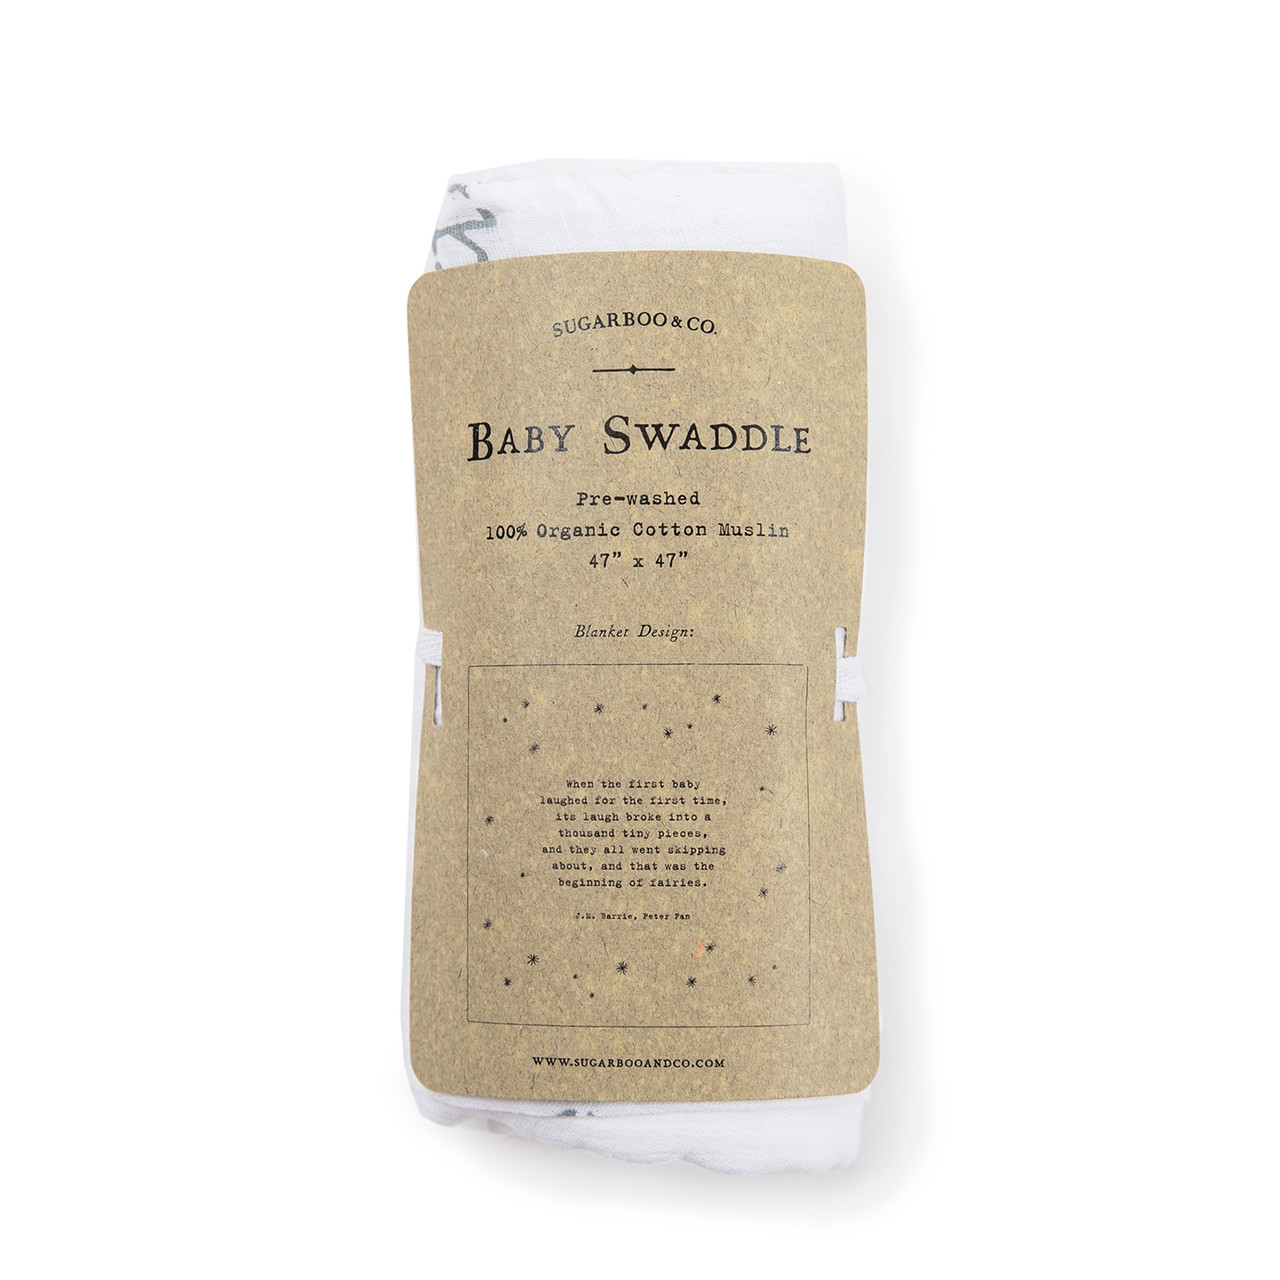 baby swaddle - when the first baby laughed